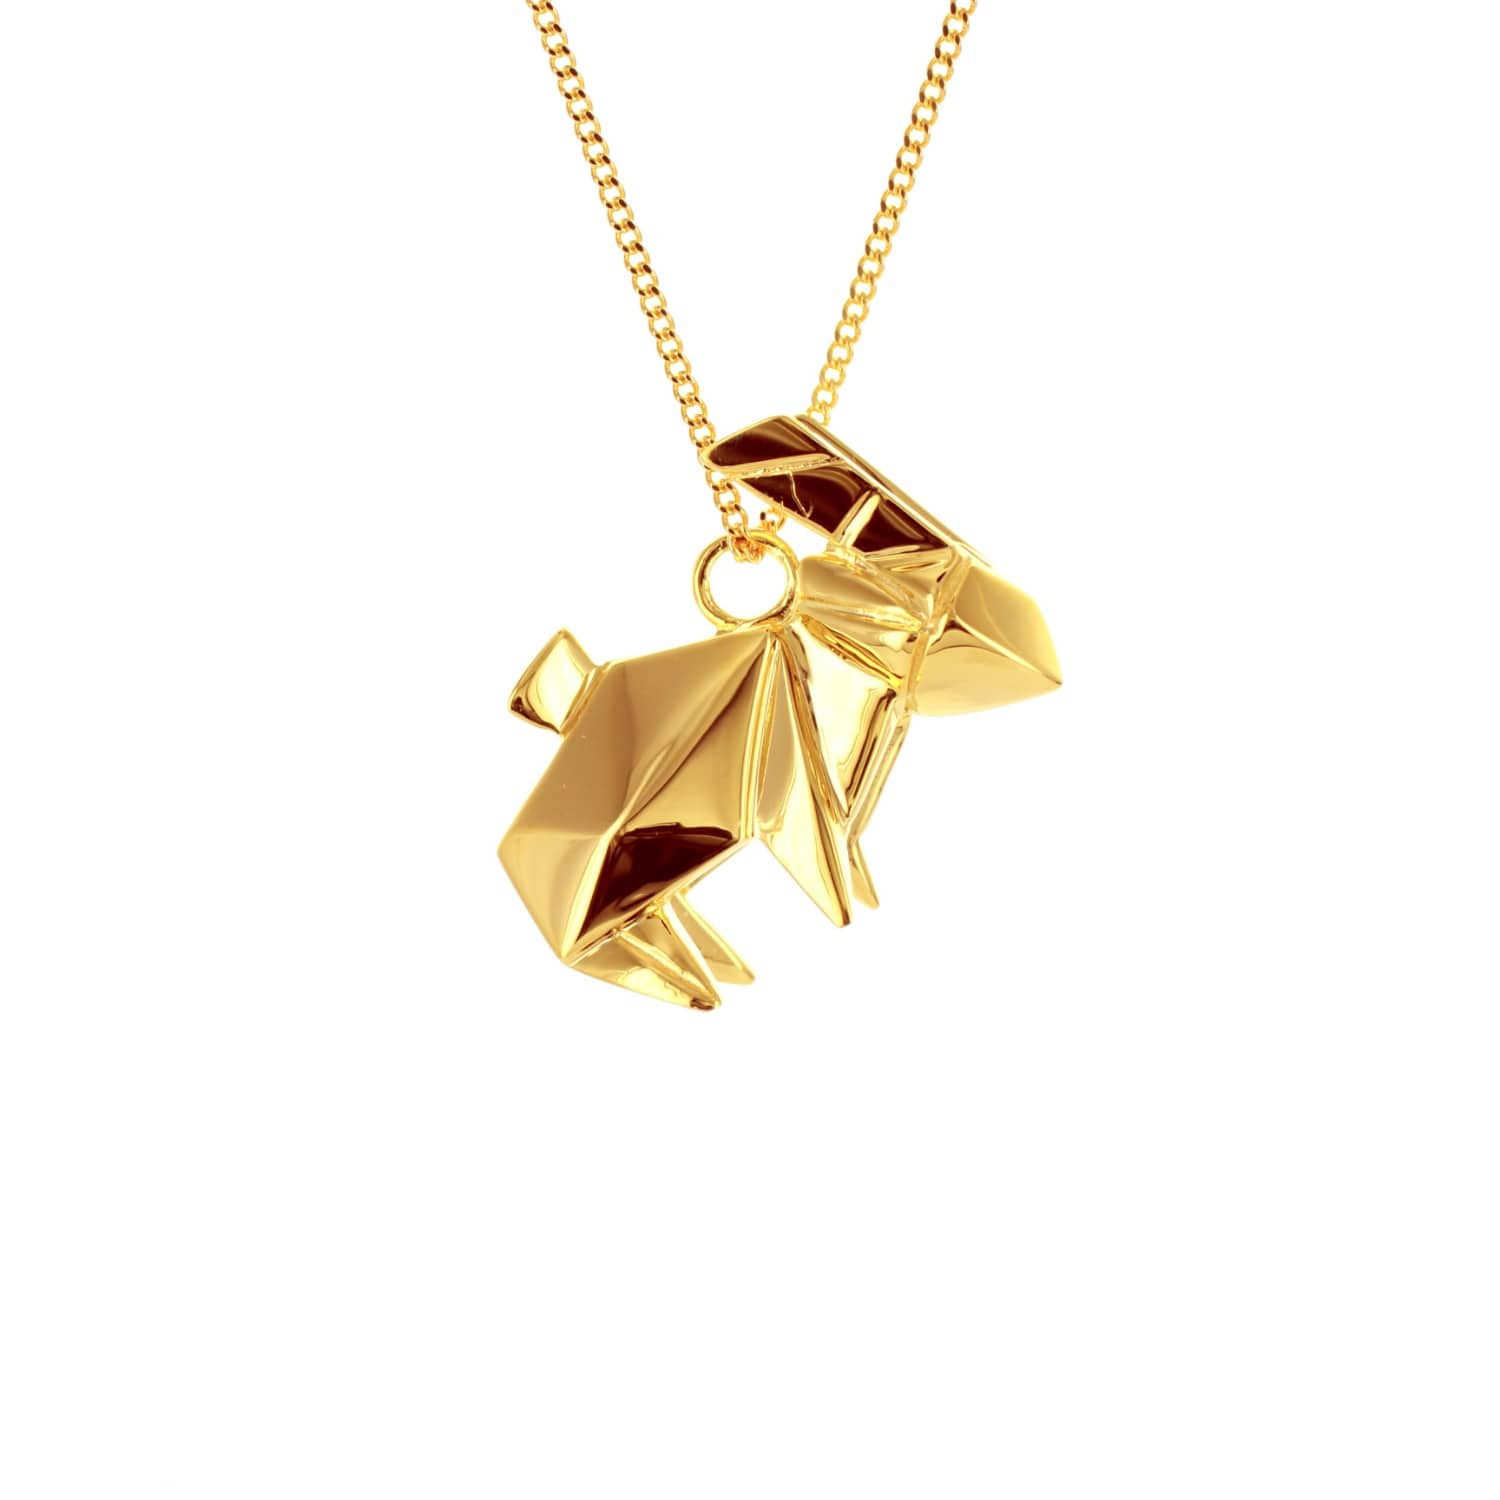 Origami Jewellery Sterling Silver & Pink Gold Mini Rabbit Origami Necklace mZ6aFo